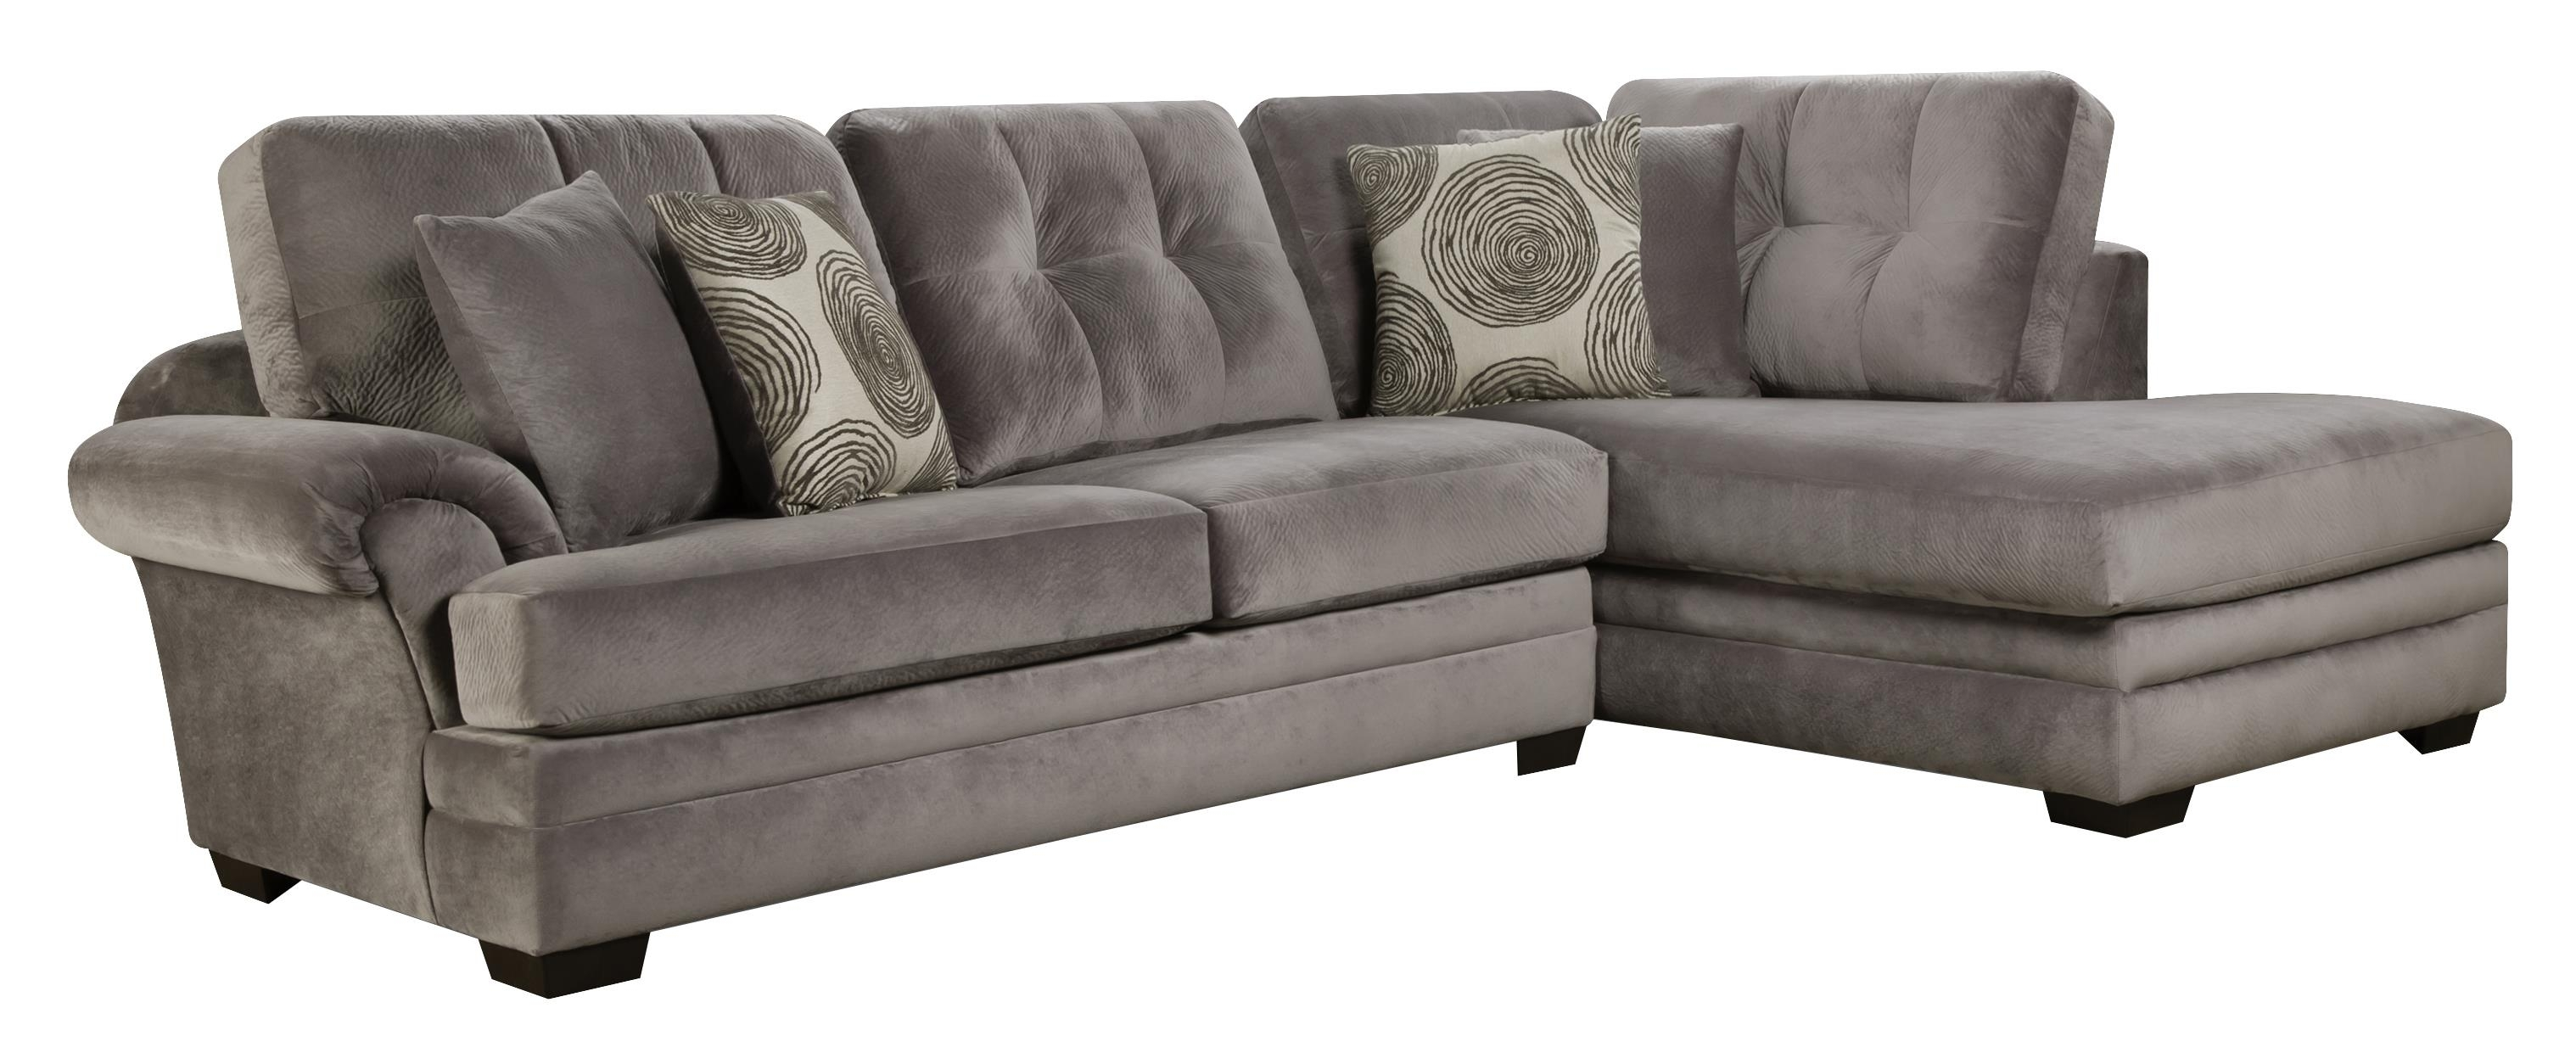 Sectional Sofa With Chaise (On Right Side)Corinthian | Wolf And In Gardiners Sectional Sofas (Image 7 of 10)